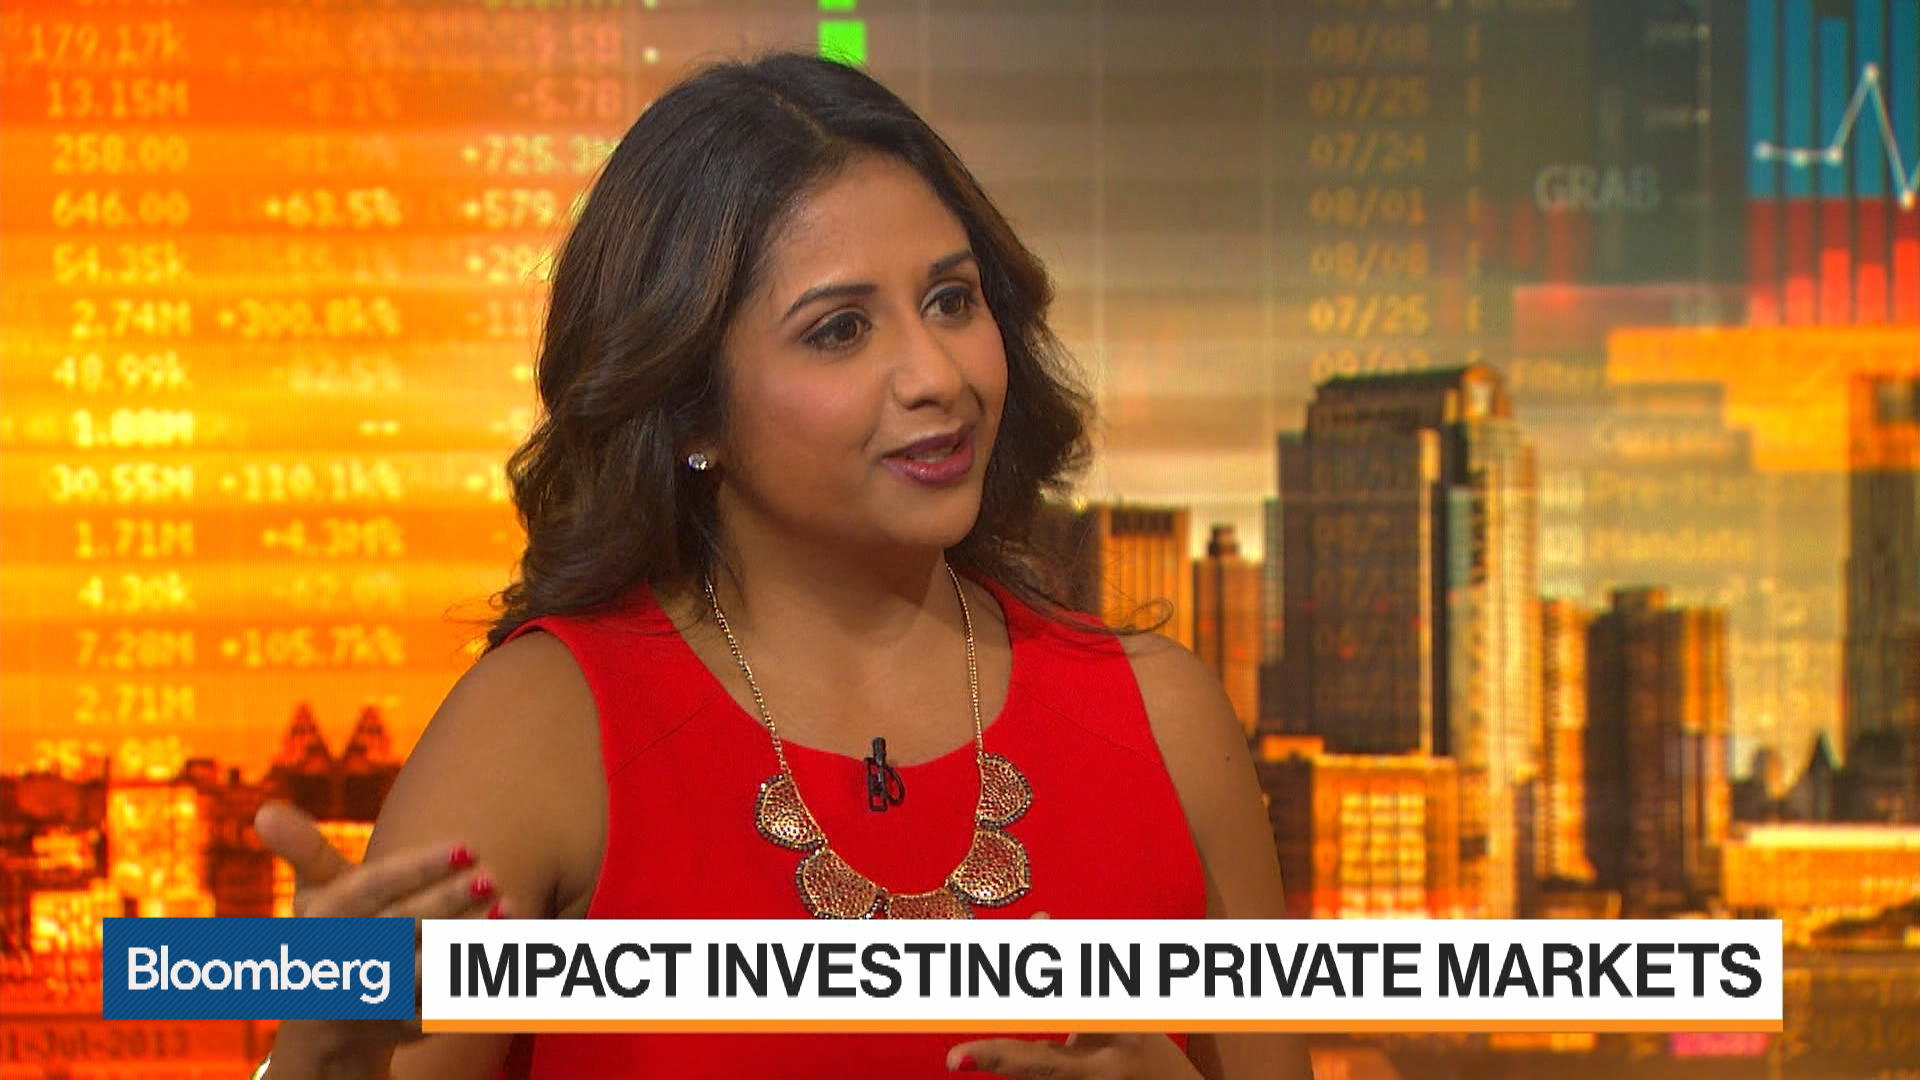 Nuveen's Take on Impact Investing